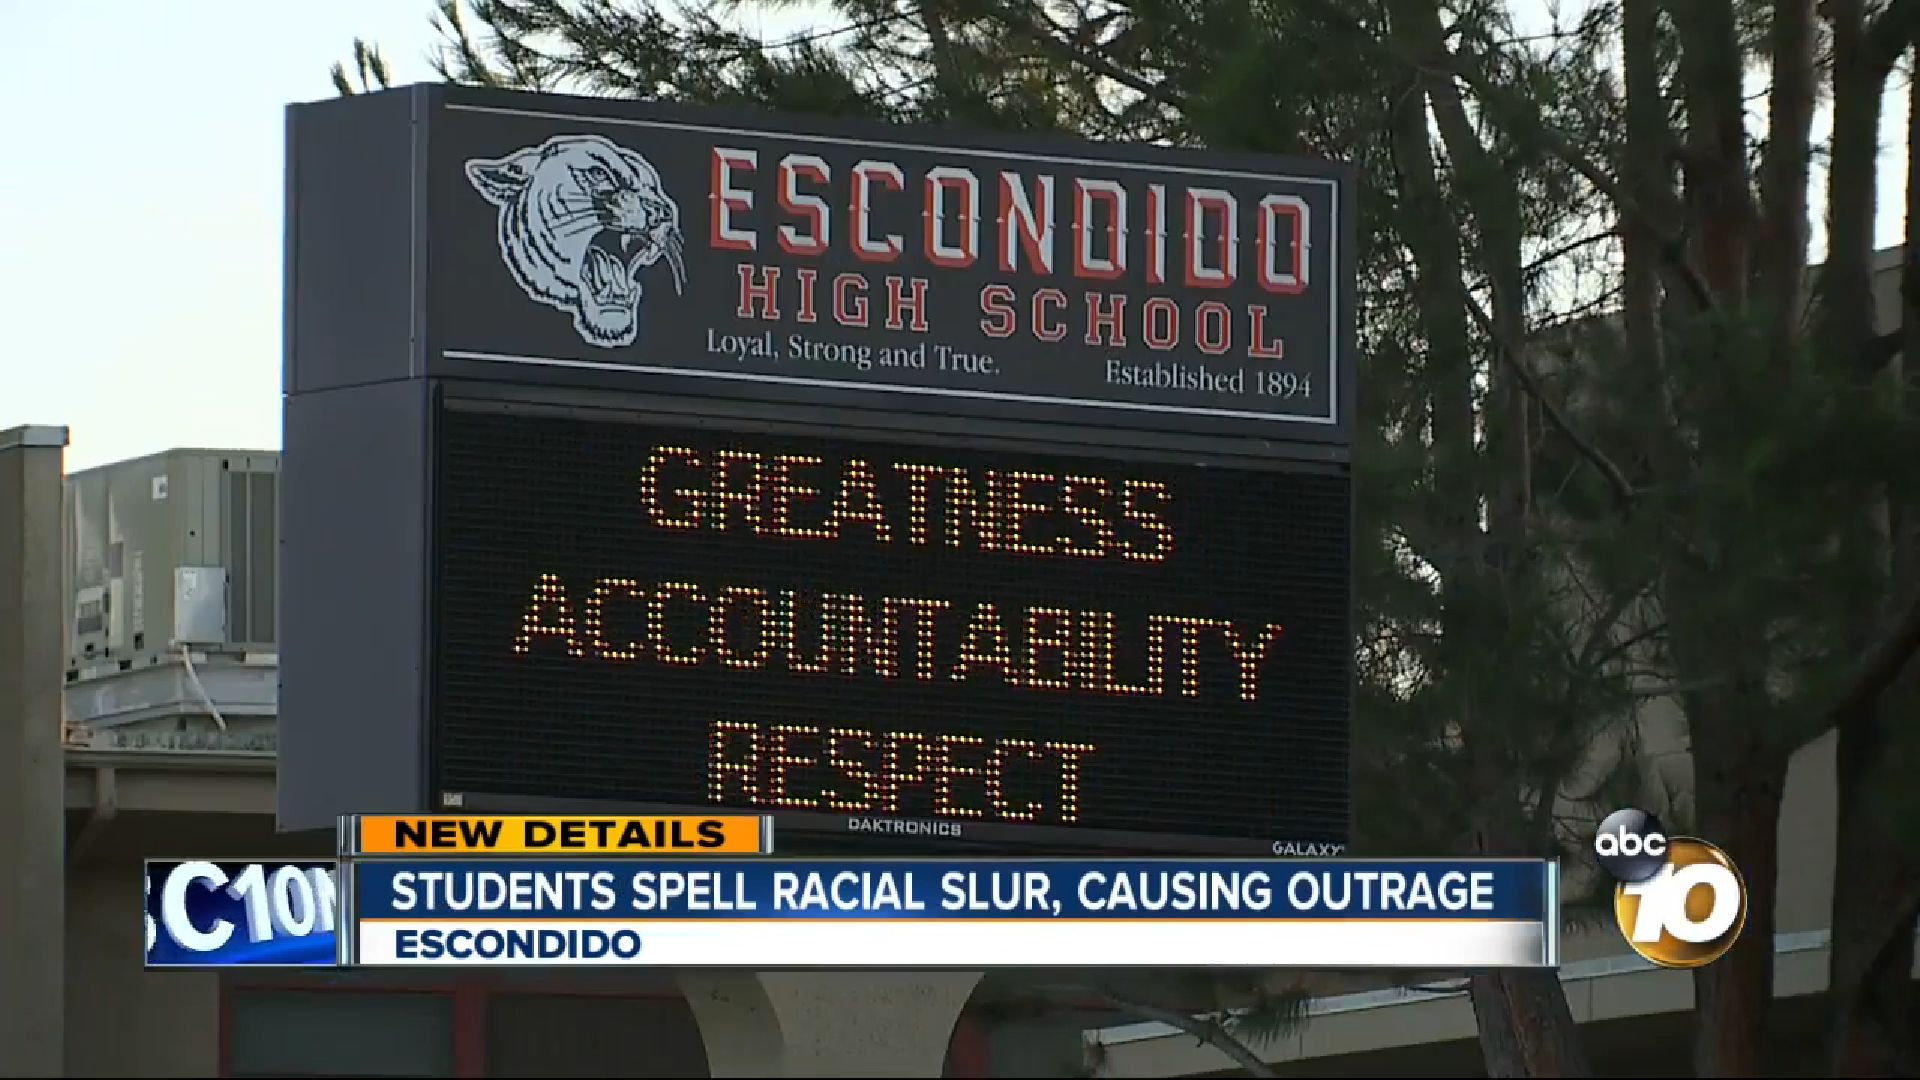 Students at Escondido High School in California are facing disciplinary action after spelling out racial and anti-gay words f